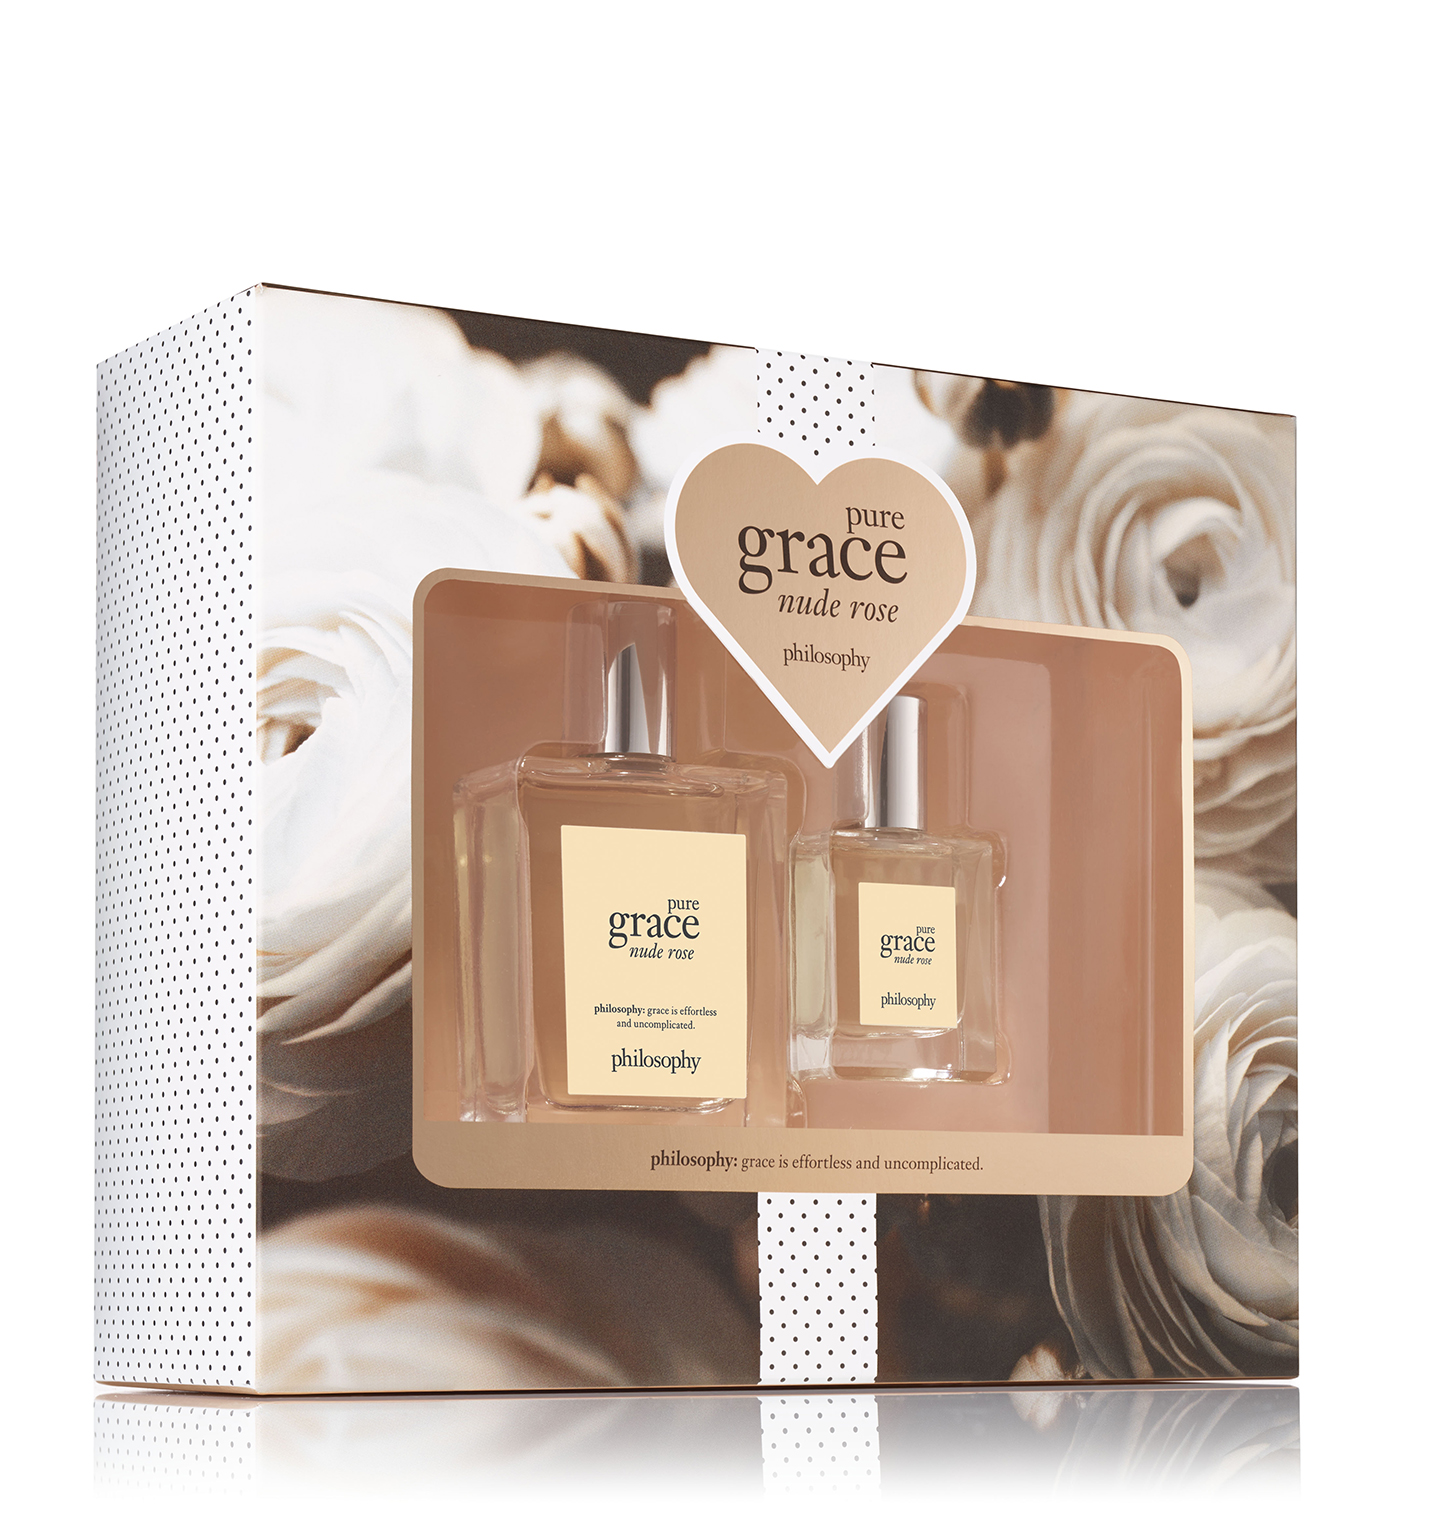 philosophy, pure grace nude rose 2-piece spray fragrance set